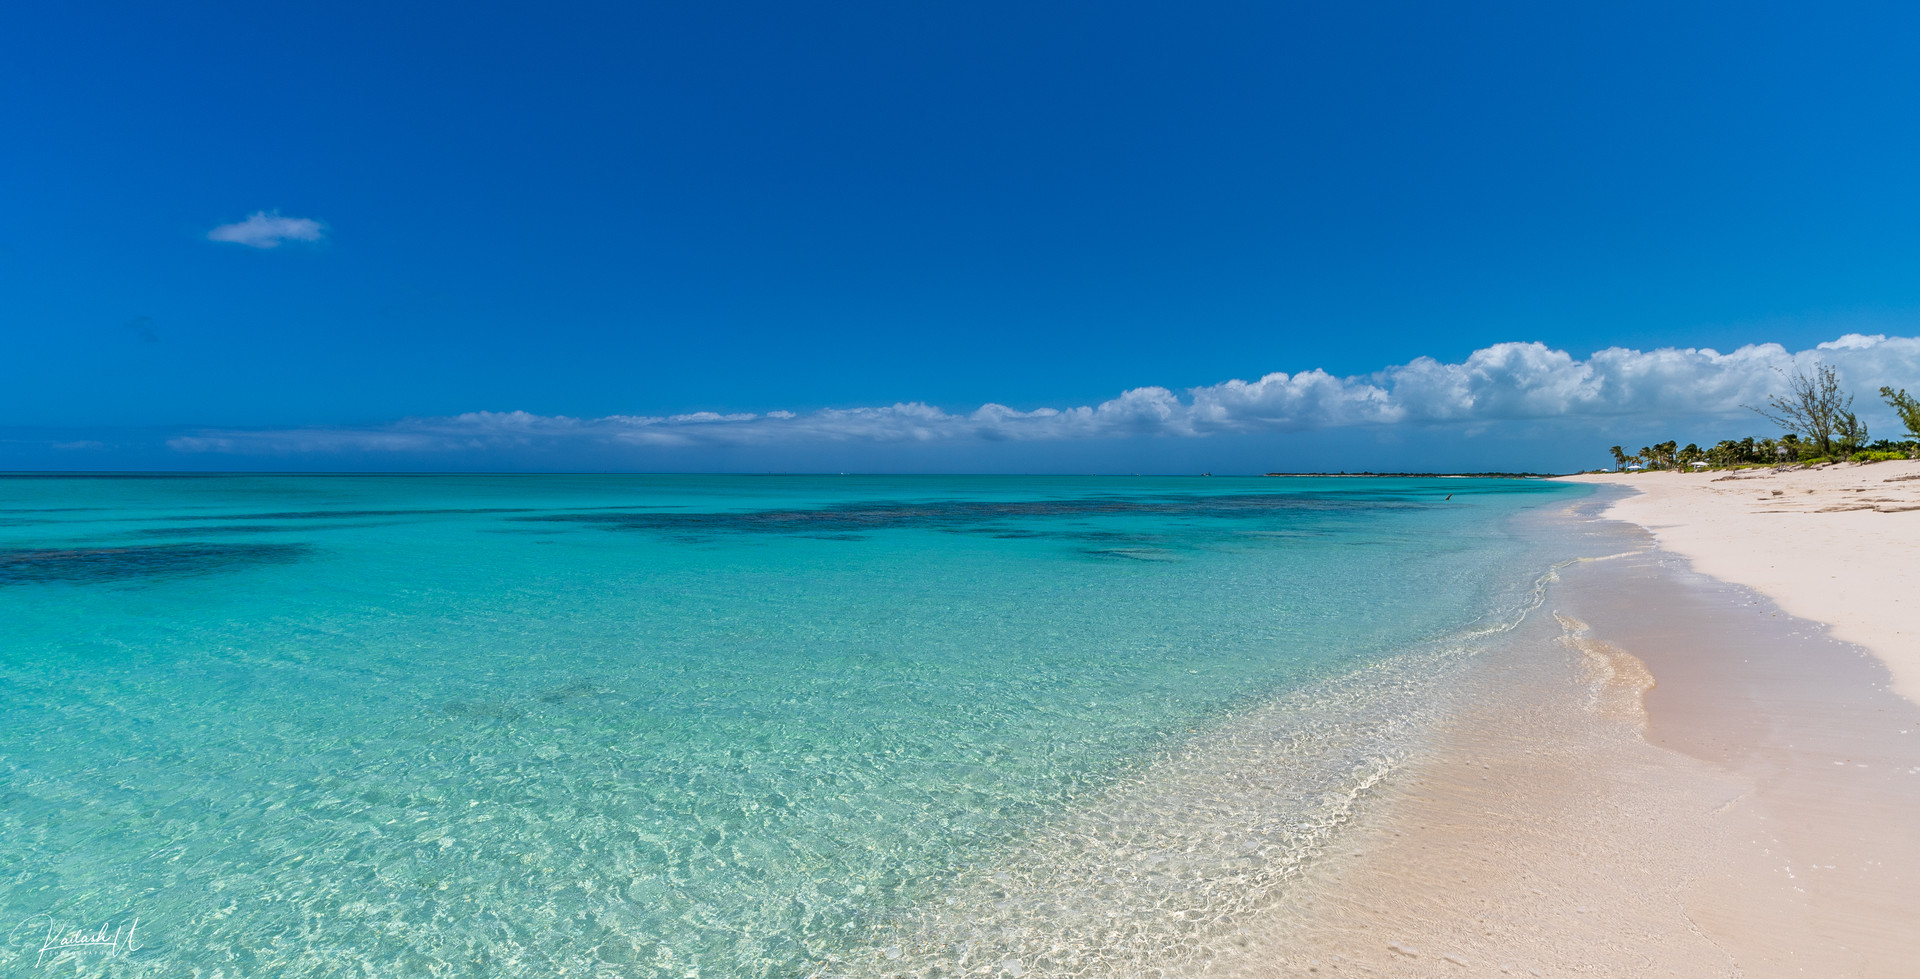 Leeward Beach, Turks & Caicos